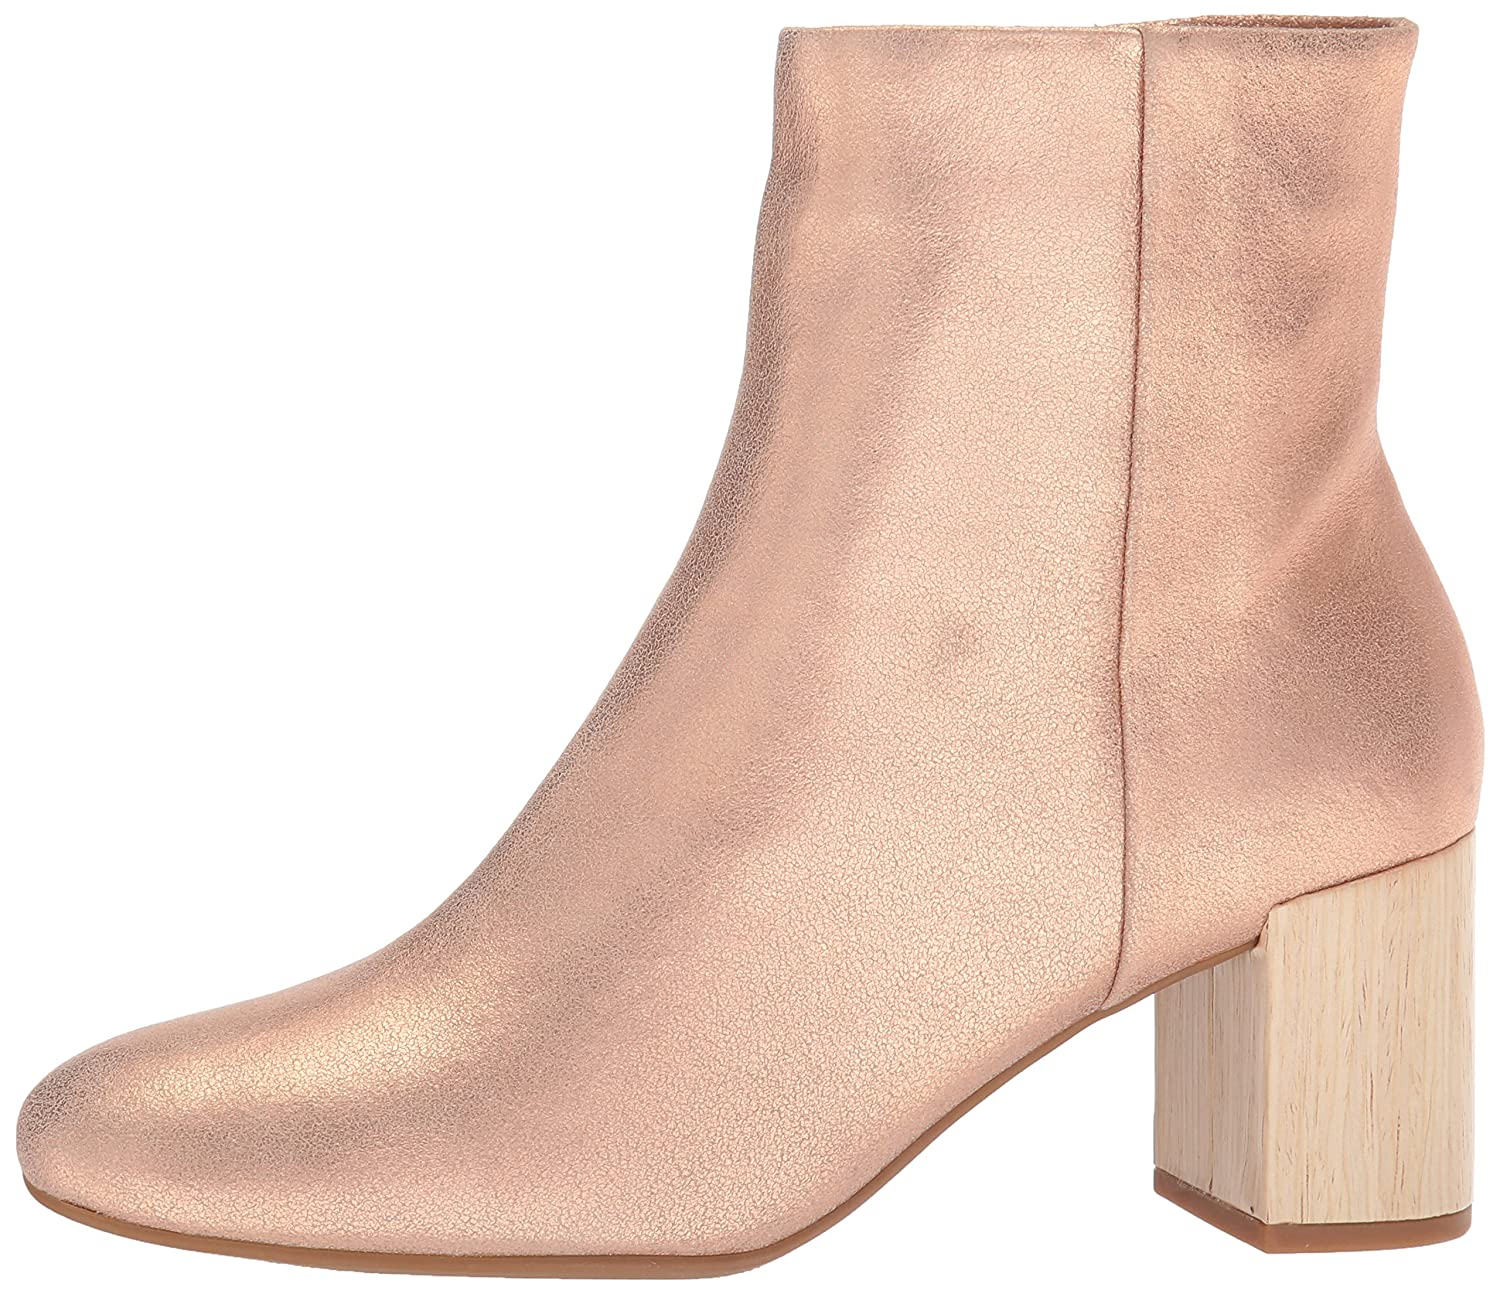 Taryn Rose Women's Cassidy Powder Metallic Ankle Boot B074B7ZQFF 6.5 M M US|Open Pink